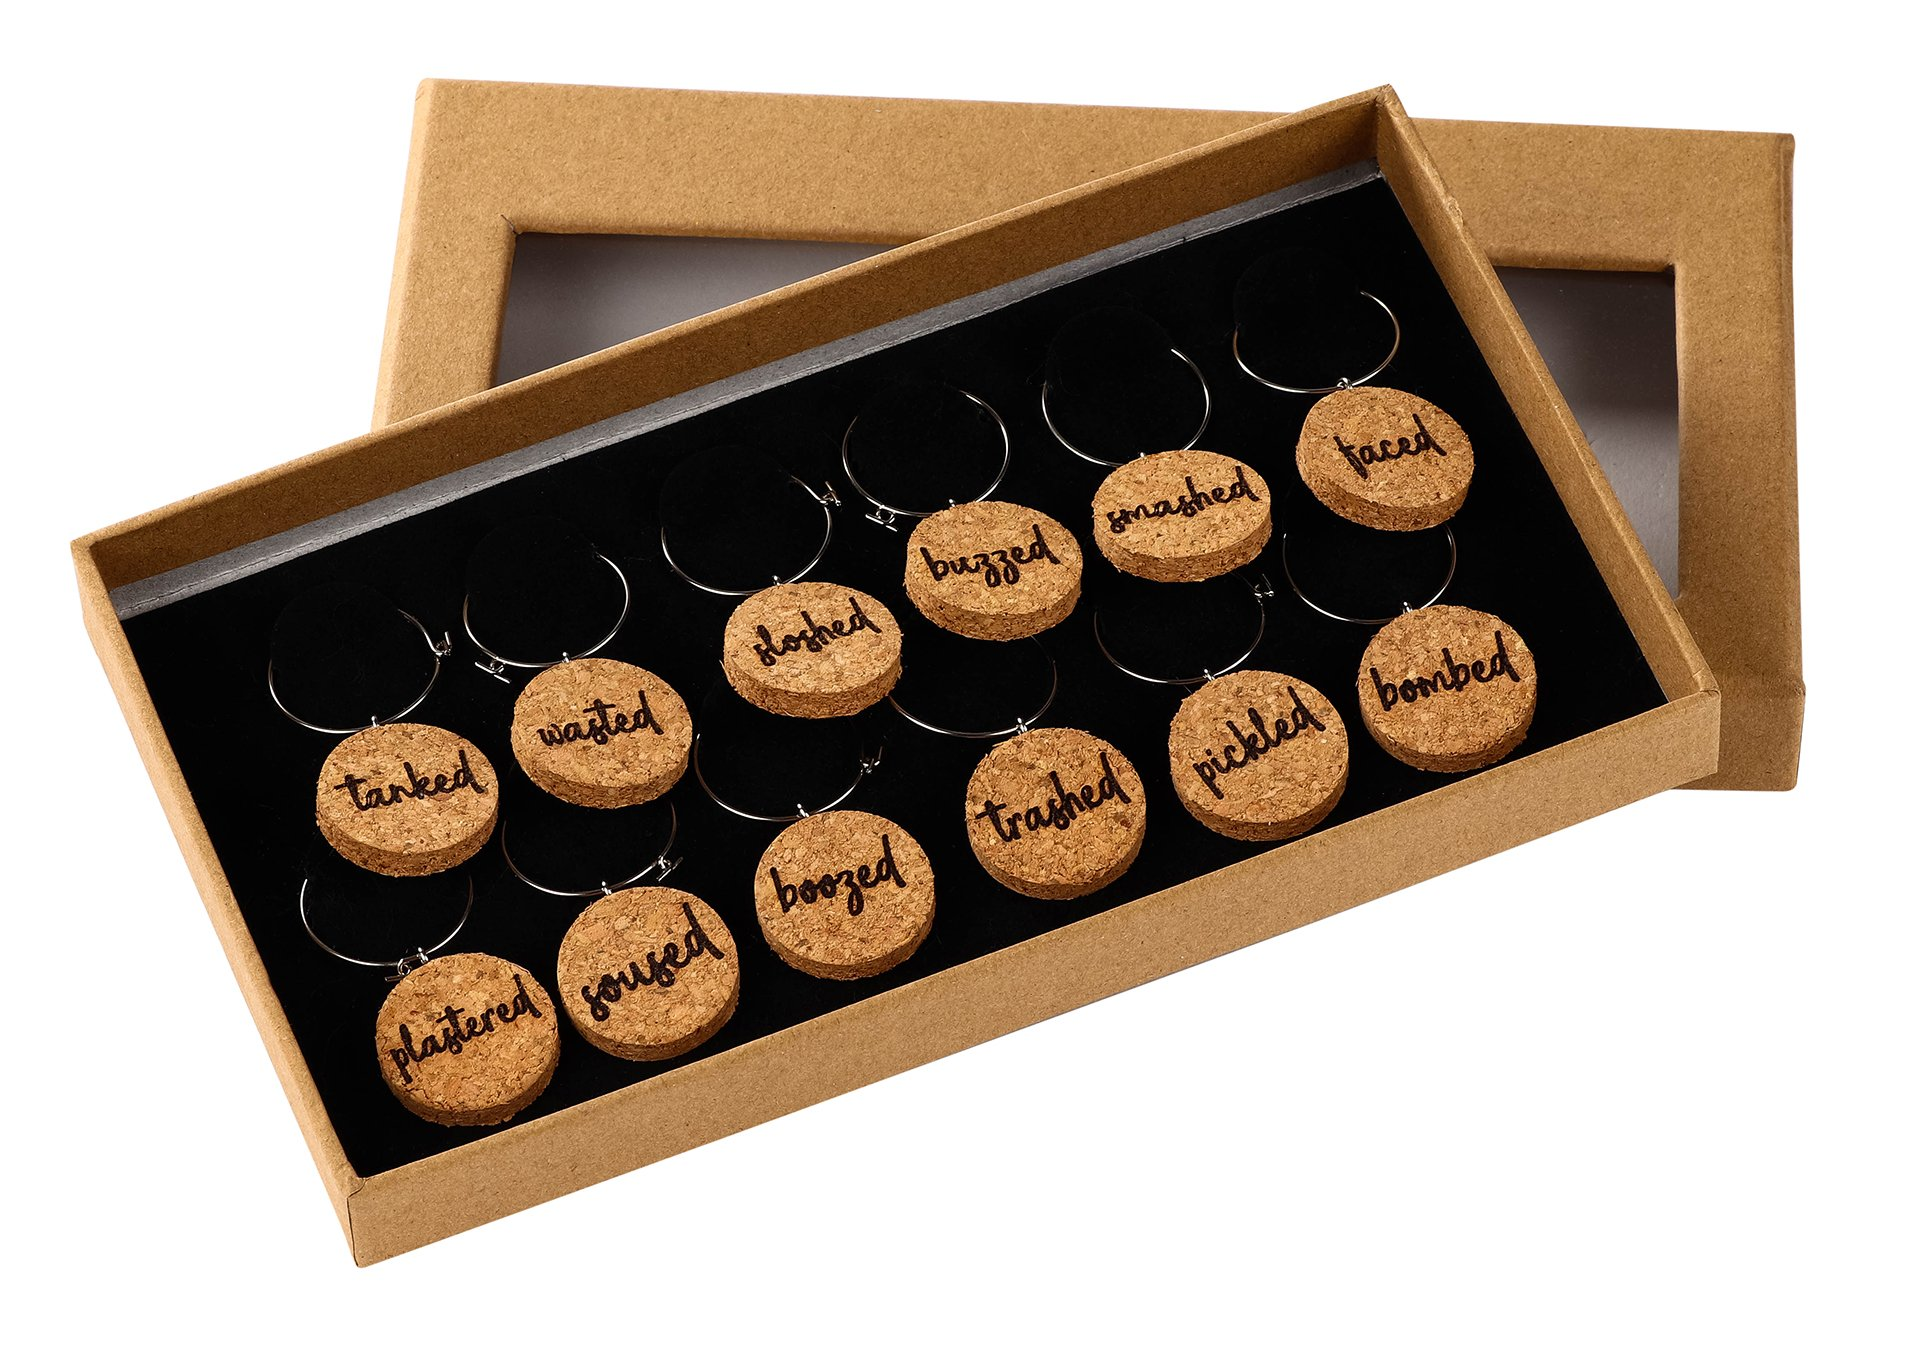 Wine Glass Charms – 12-Piece Wine Charm Drink Markers, Natural Cork Wine Lover, Funny Themed Wine Glass Tags Decorations for Parties, Gatherings, Reunions, 1 x 0.19 inches